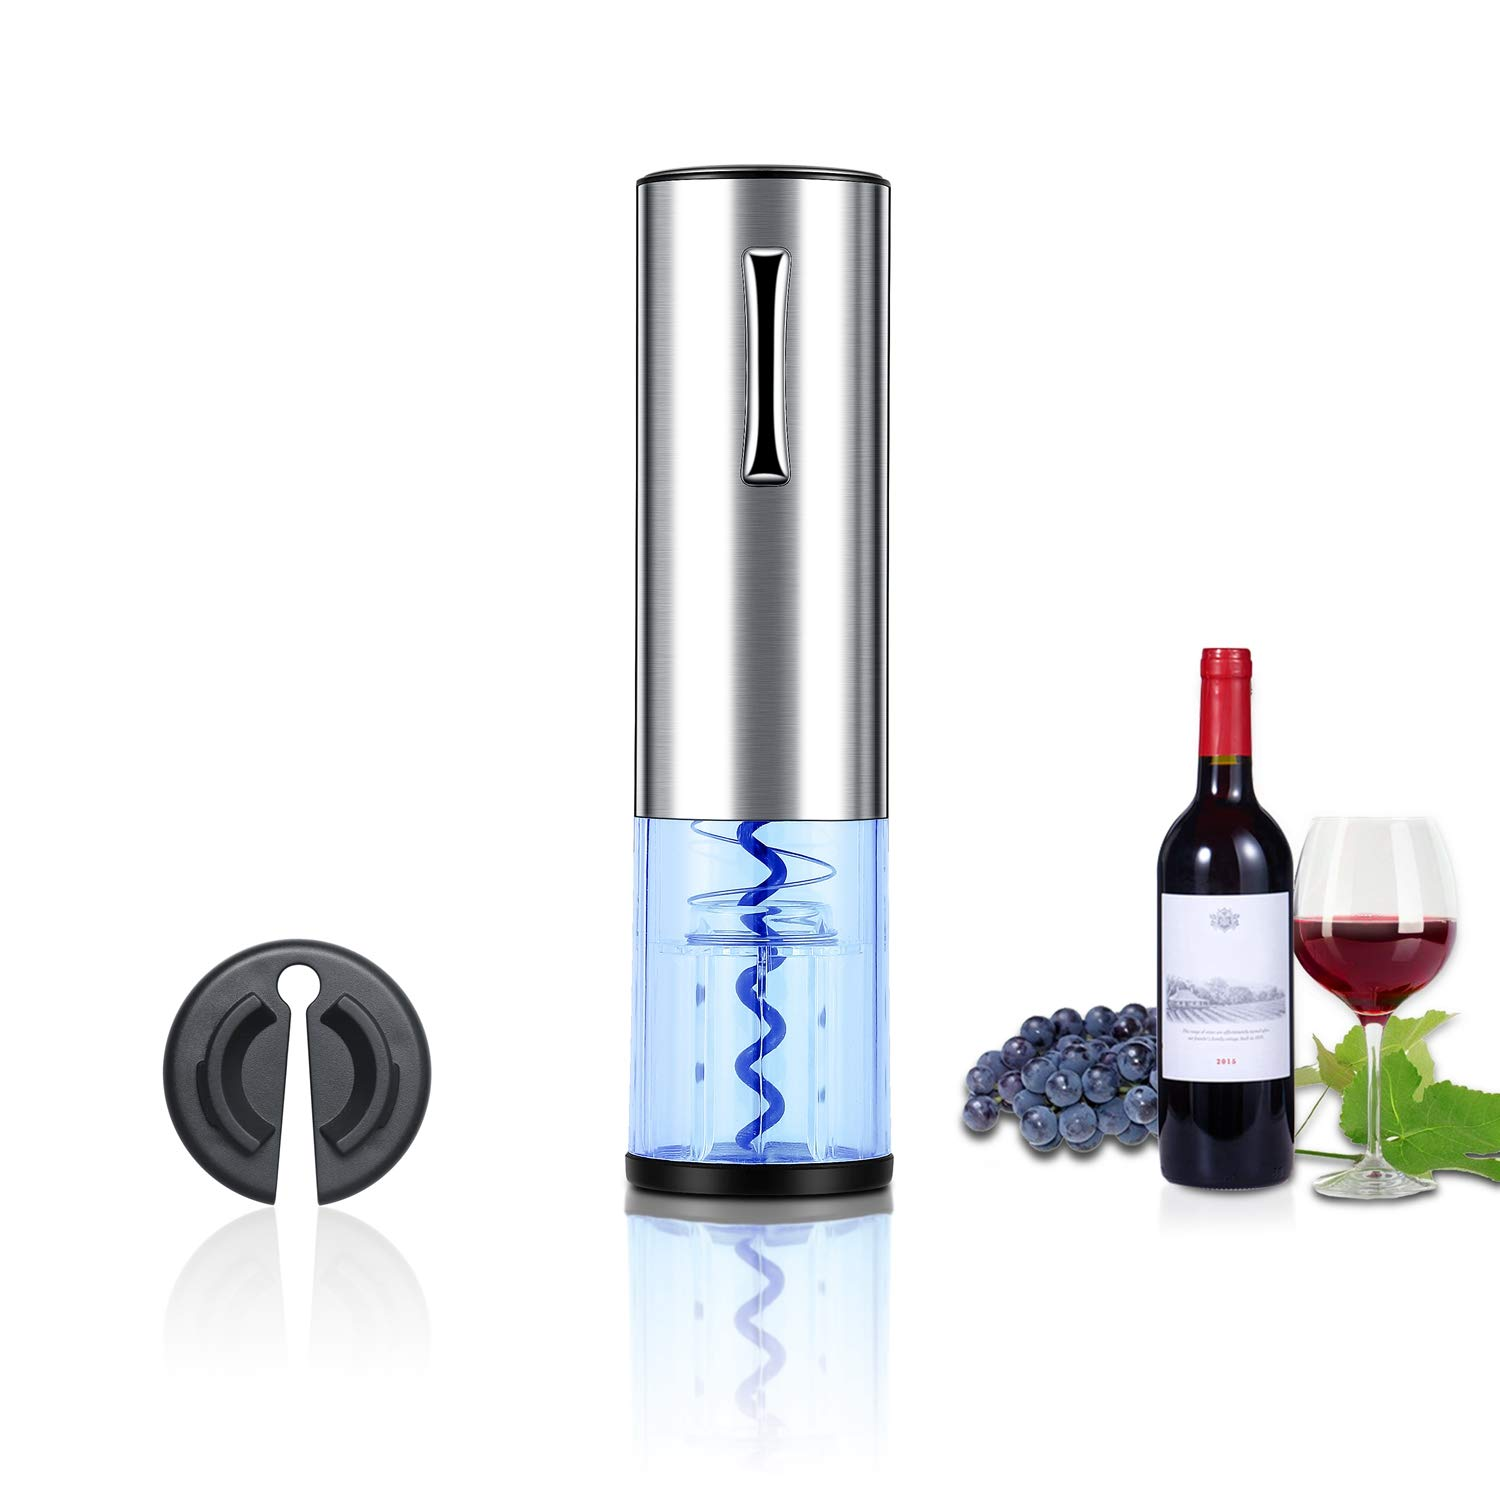 Electric Wine Bottle Opener, Gorgeous Tec Rechargeable Electric Corkscrew Wine Opener With USB Charging Cable Foil Cutter Led Light for Home, Winery, Party and As Gift--Stainless Steel